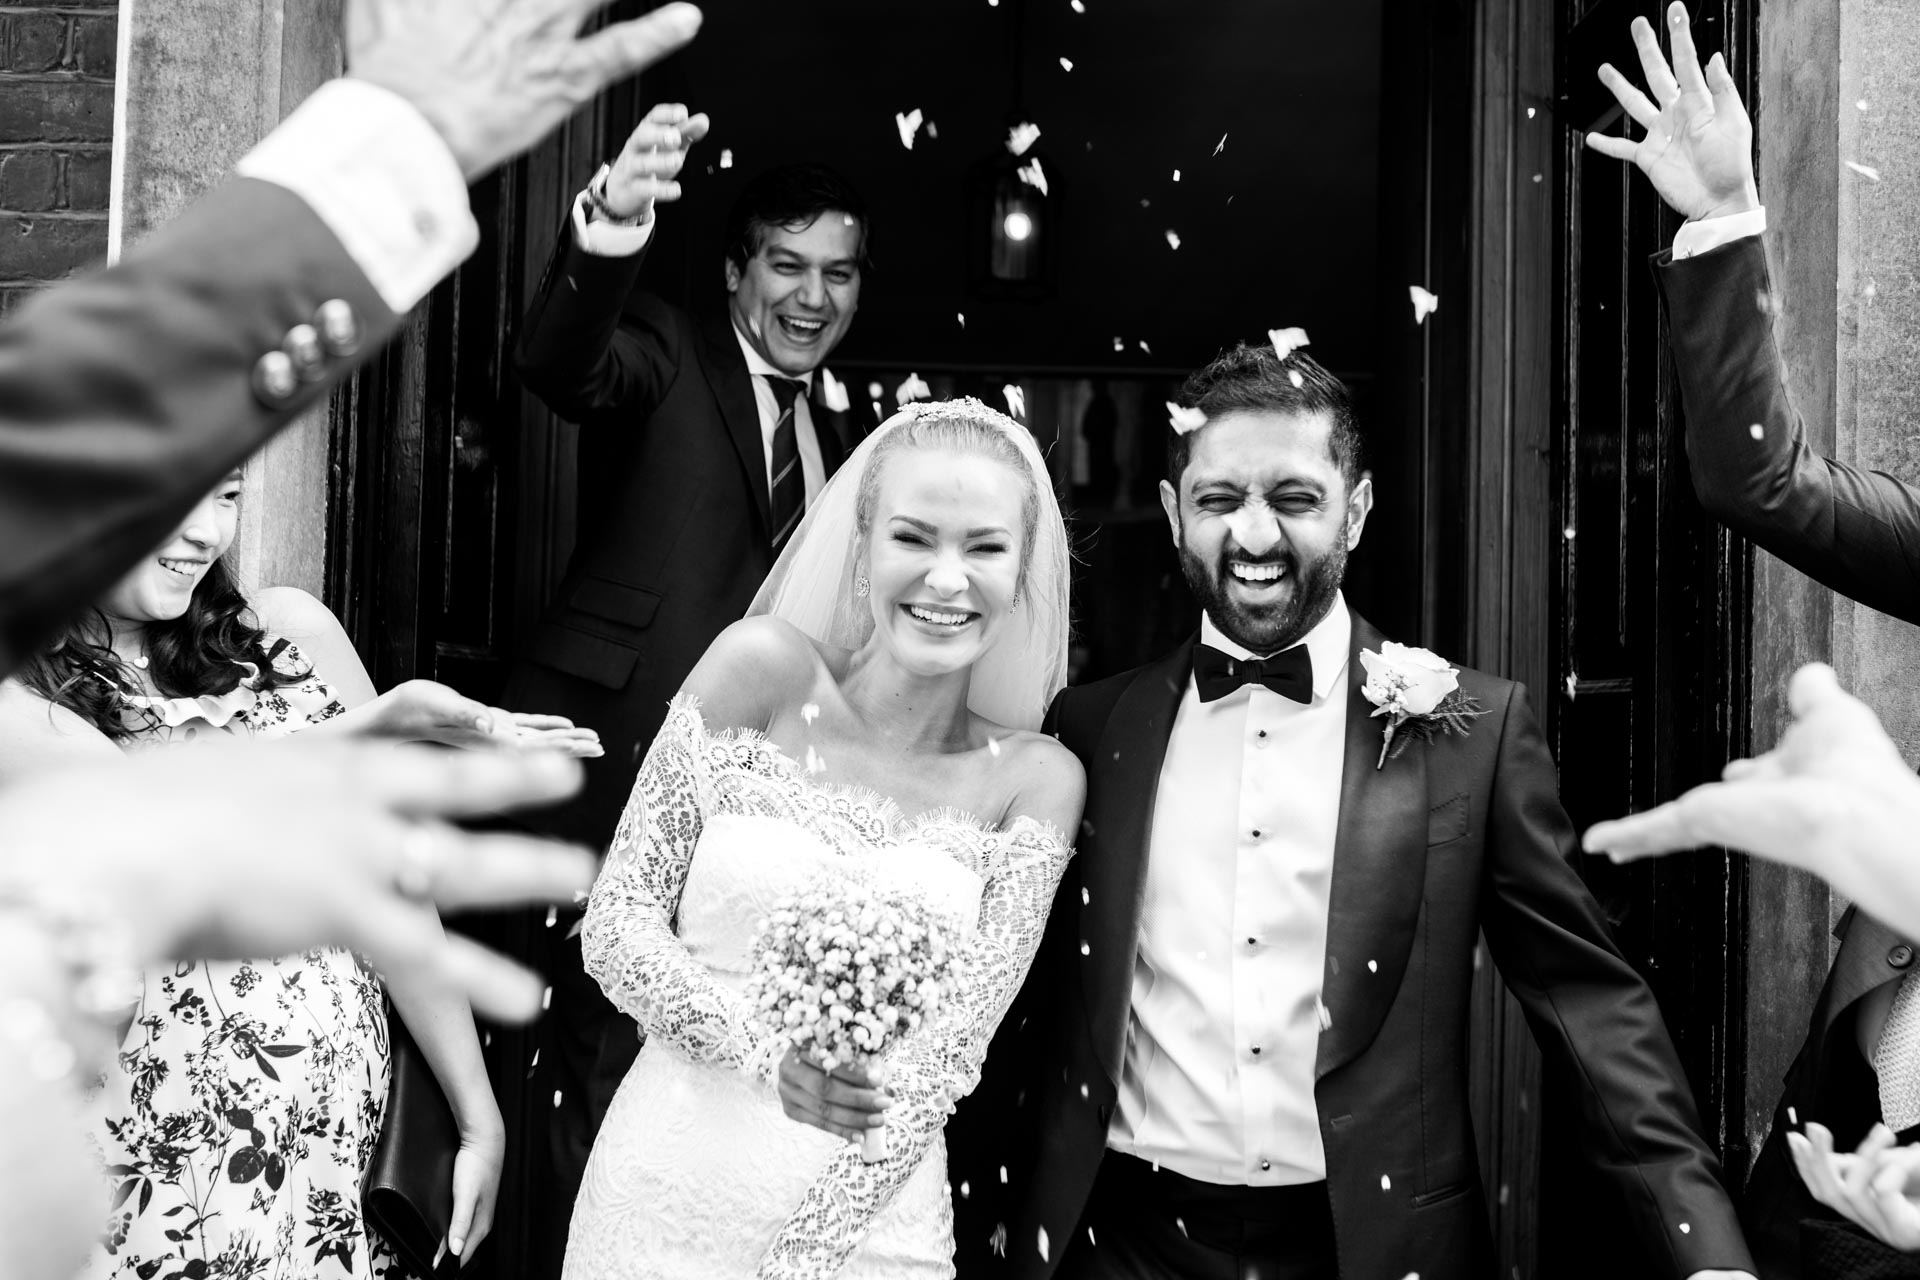 An image of confetti being thrown on the happy couple - wedding photography by Sam of Hansford Carter, a Kent wedding photographer